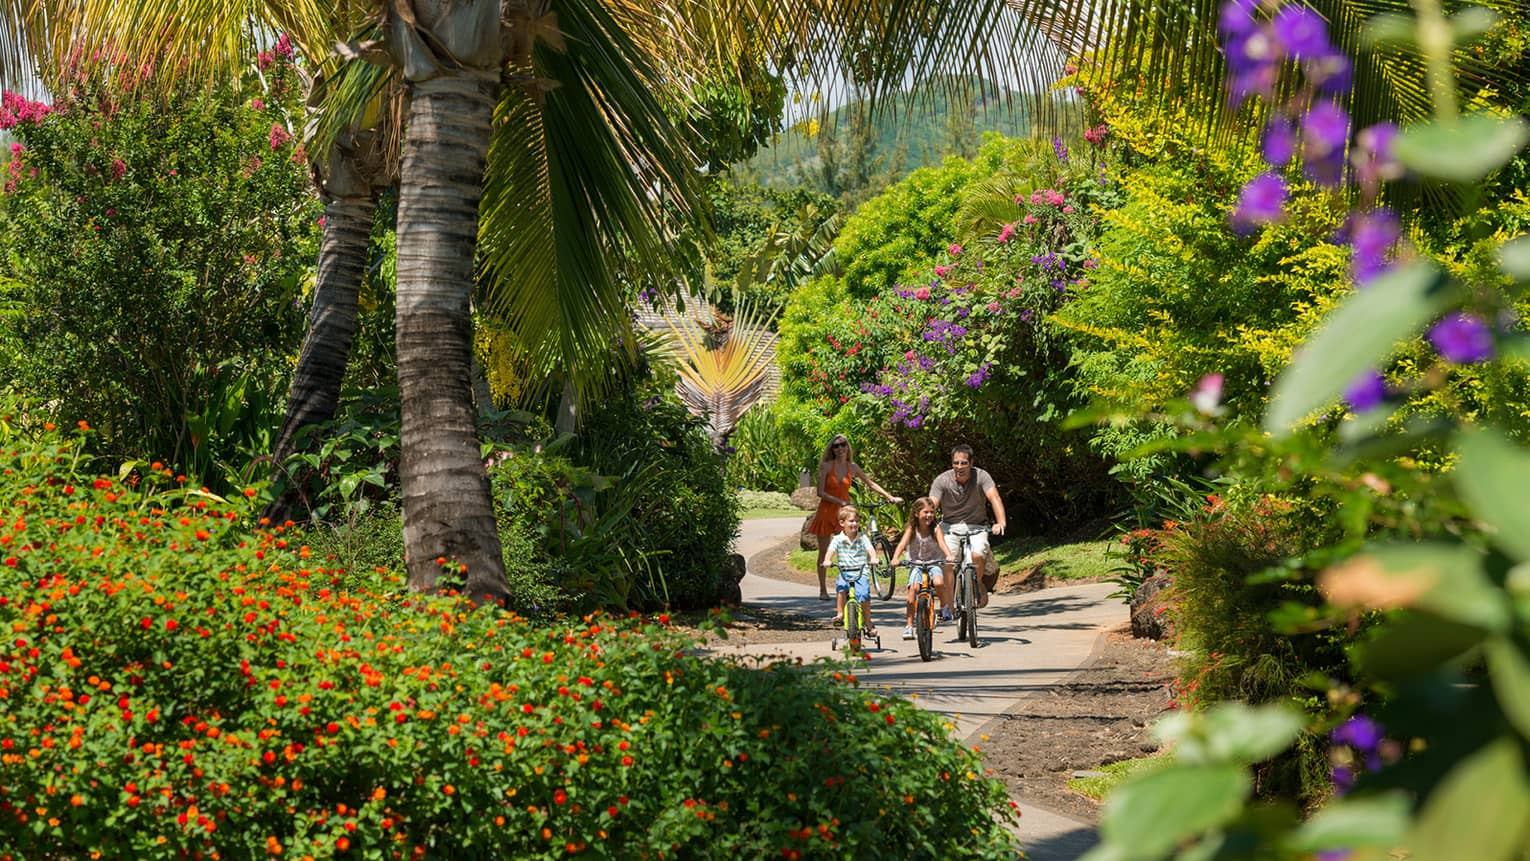 Family of four riding bikes on path amid lush flora and fauna